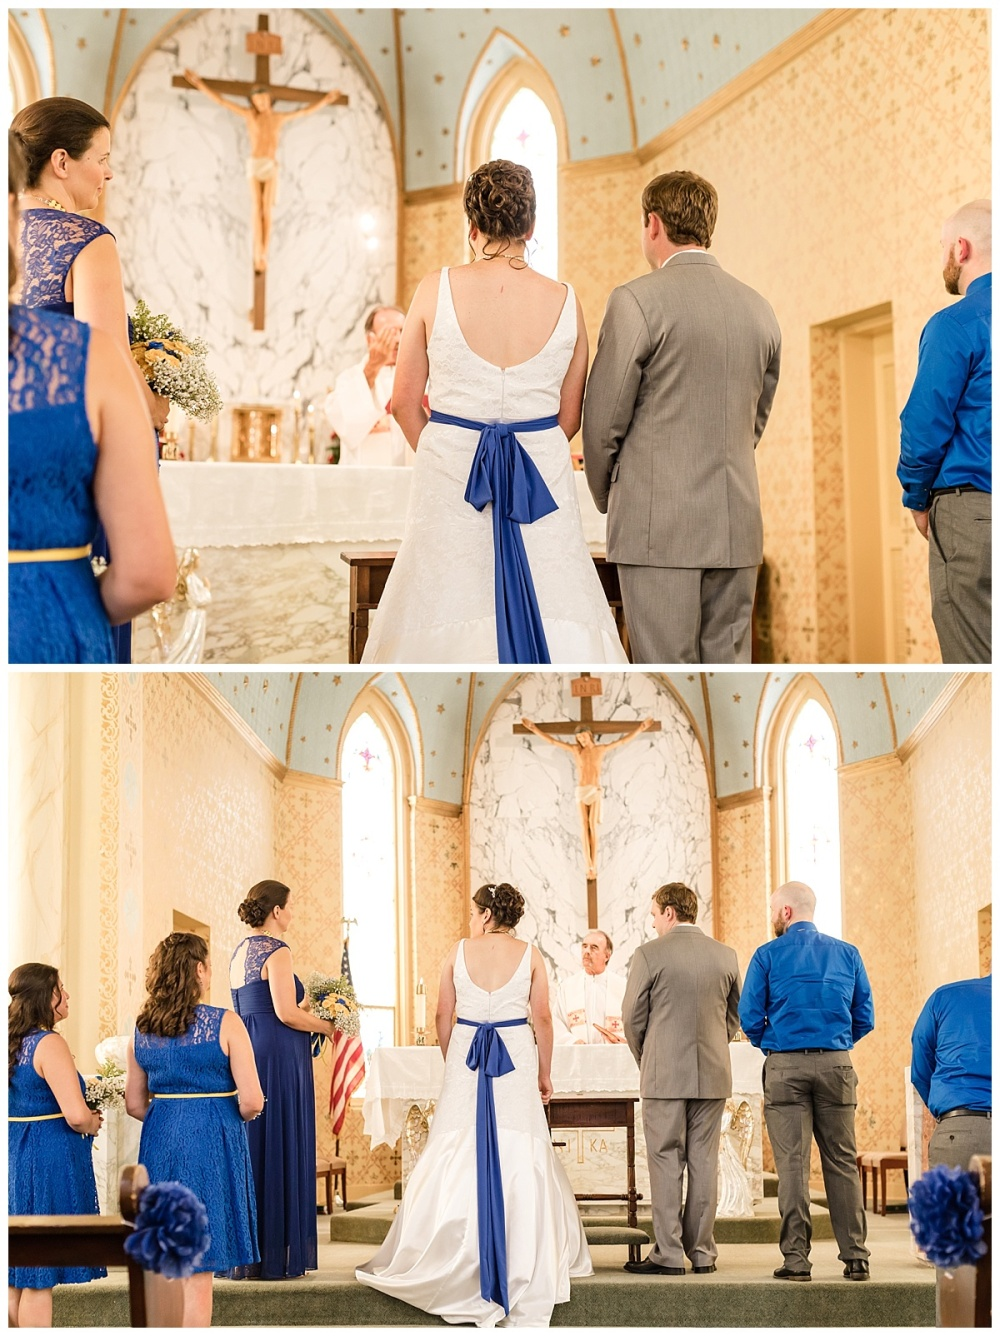 Texas-Wedding-Photographer-La-Coste-Our-Lady-Of-Grace-Church-Bride-Groom-Lego-Theme-Carly-Barton-Photography_0058.jpg